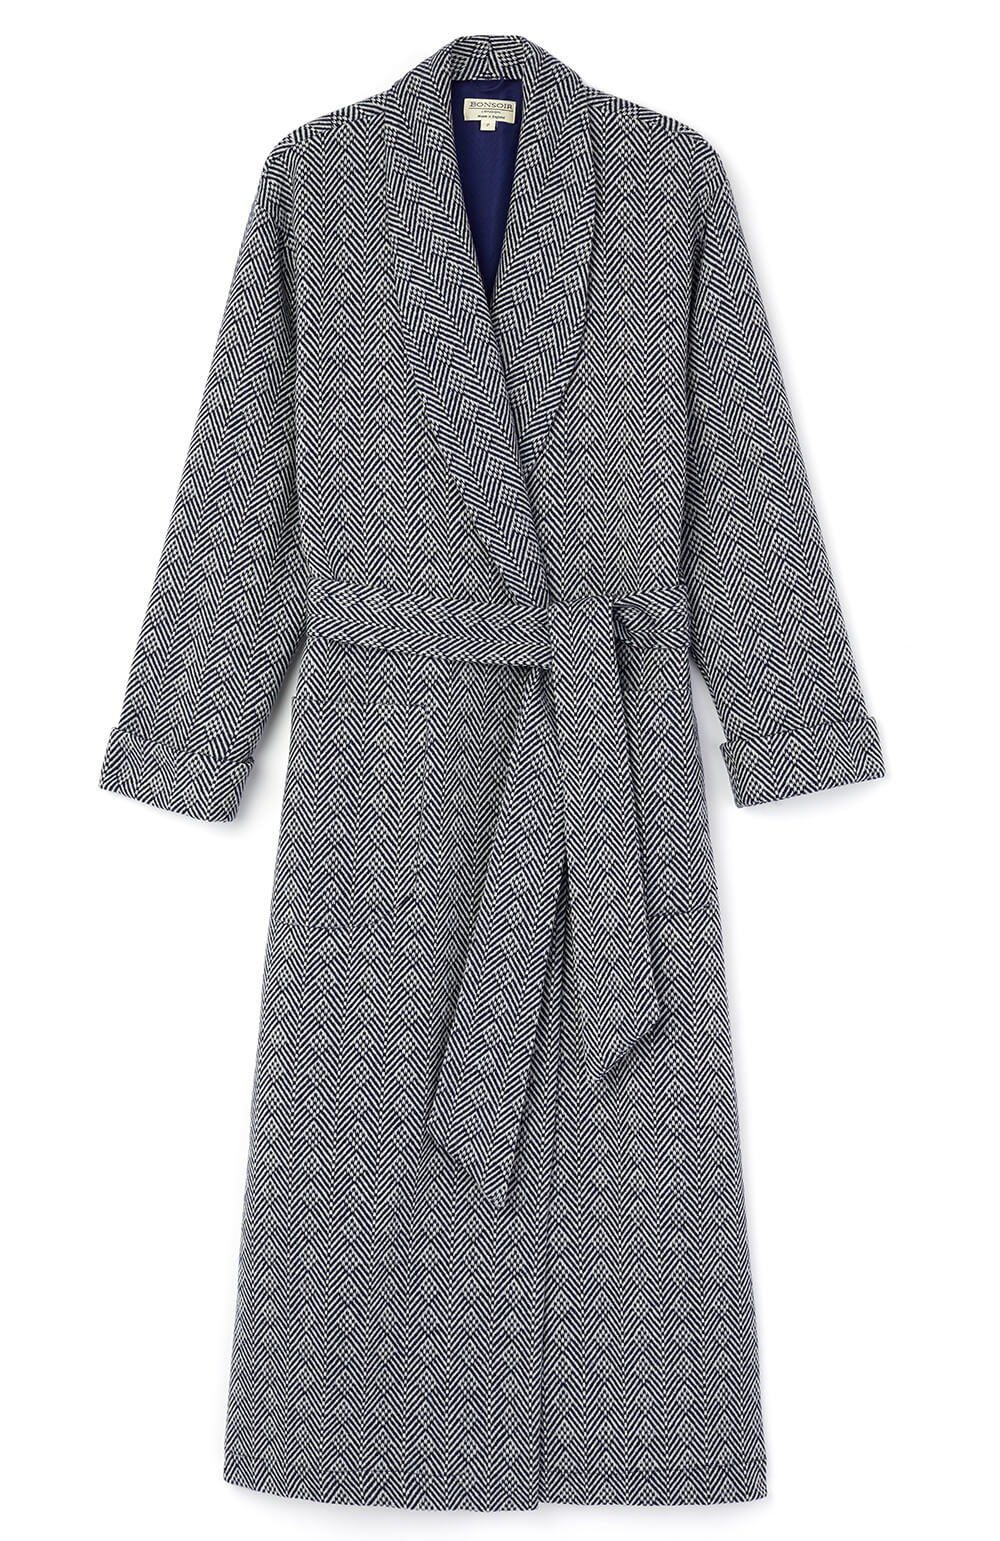 Silk-Lined Wool Robe (wlld) - Navy Jacquard